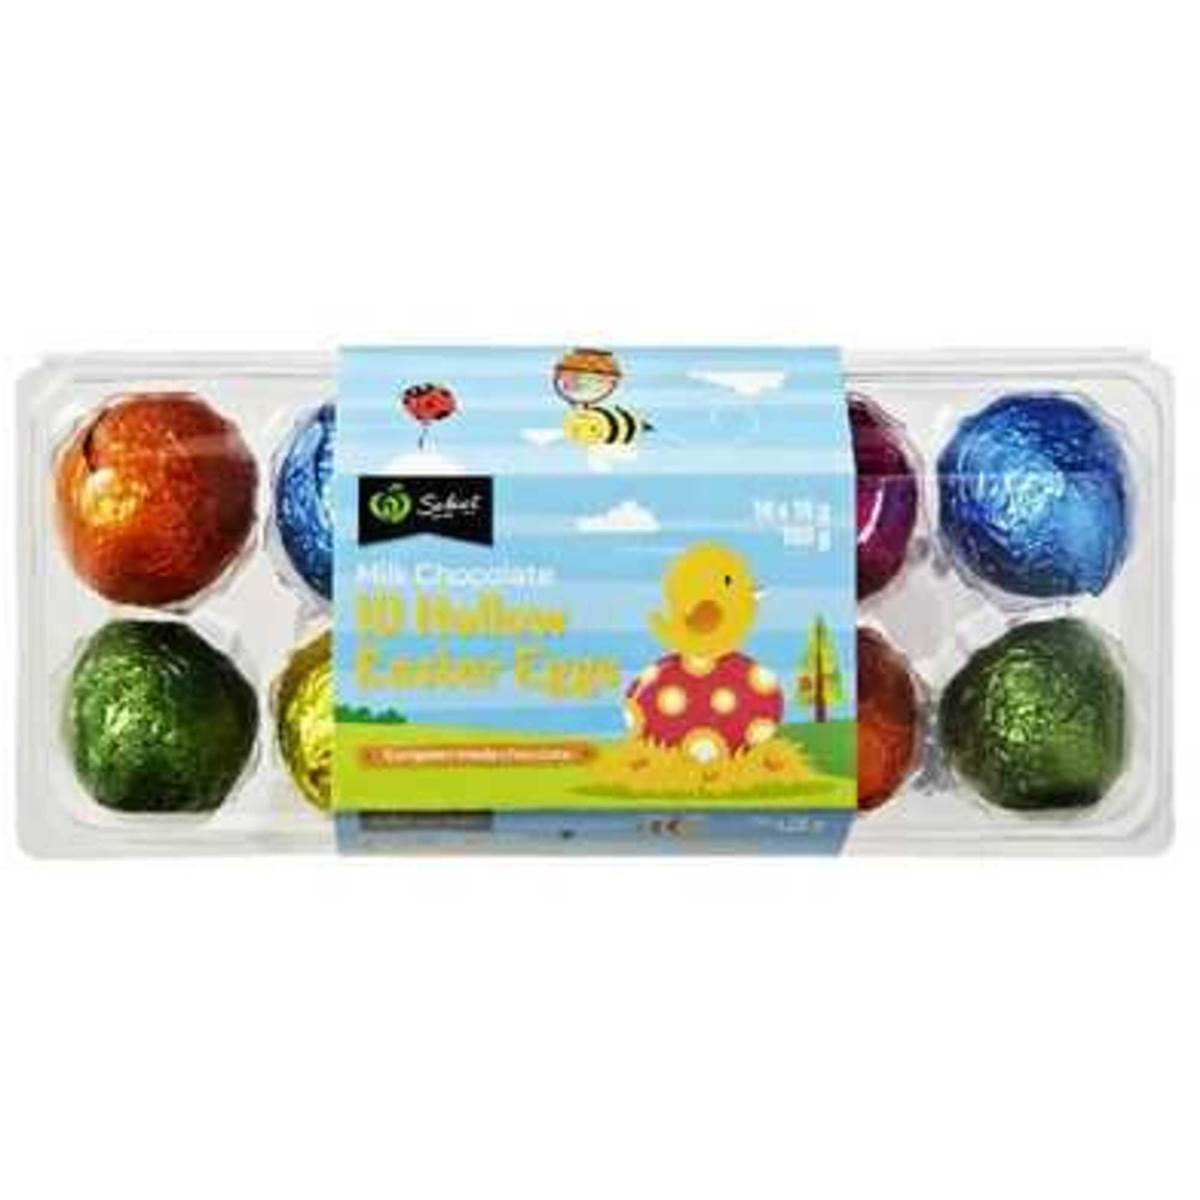 Woolworths milk chocolate hollow easter eggs 10pk 180g woolworths woolworths milk chocolate hollow easter eggs 10pk 180g negle Images